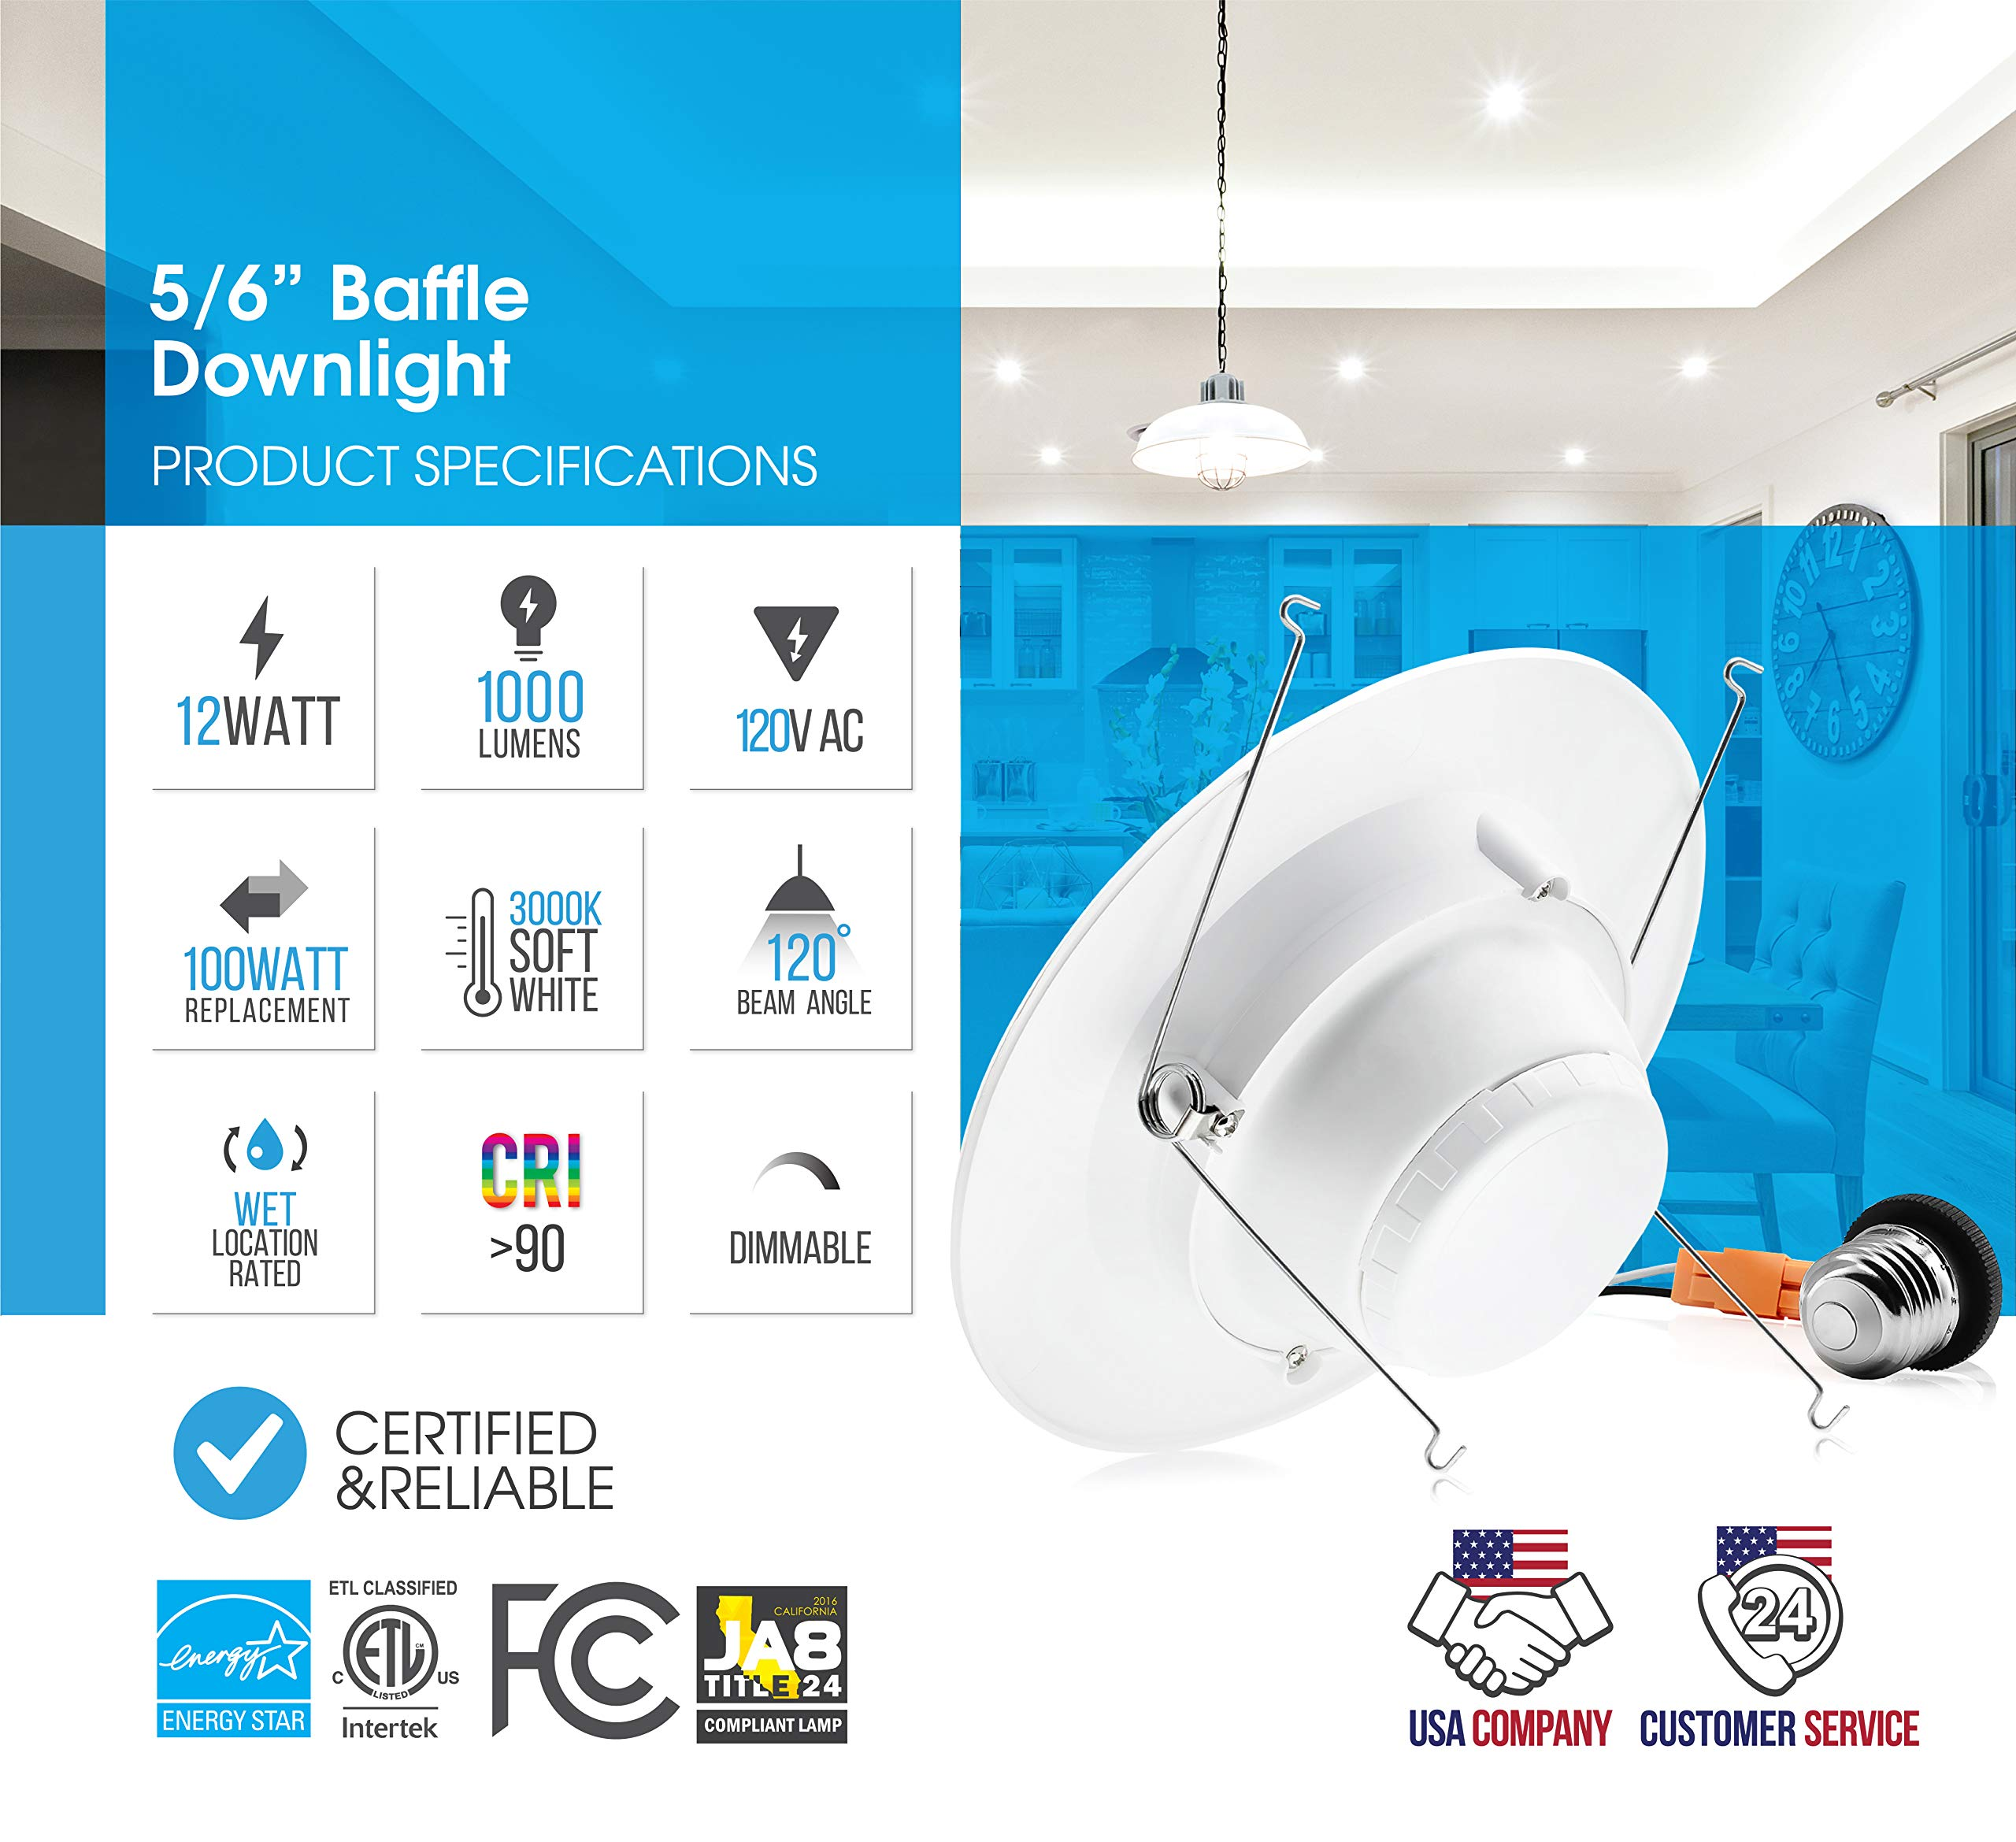 Parmida (12 Pack) 5/6 inch Dimmable LED Downlight, 12W (100W Replacement), Baffle Design, Retrofit Recessed Lighting, Can Light, LED Trim, 3000K (Soft White), 1000lm, Energy Star & ETL by Parmida LED Technologies (Image #3)